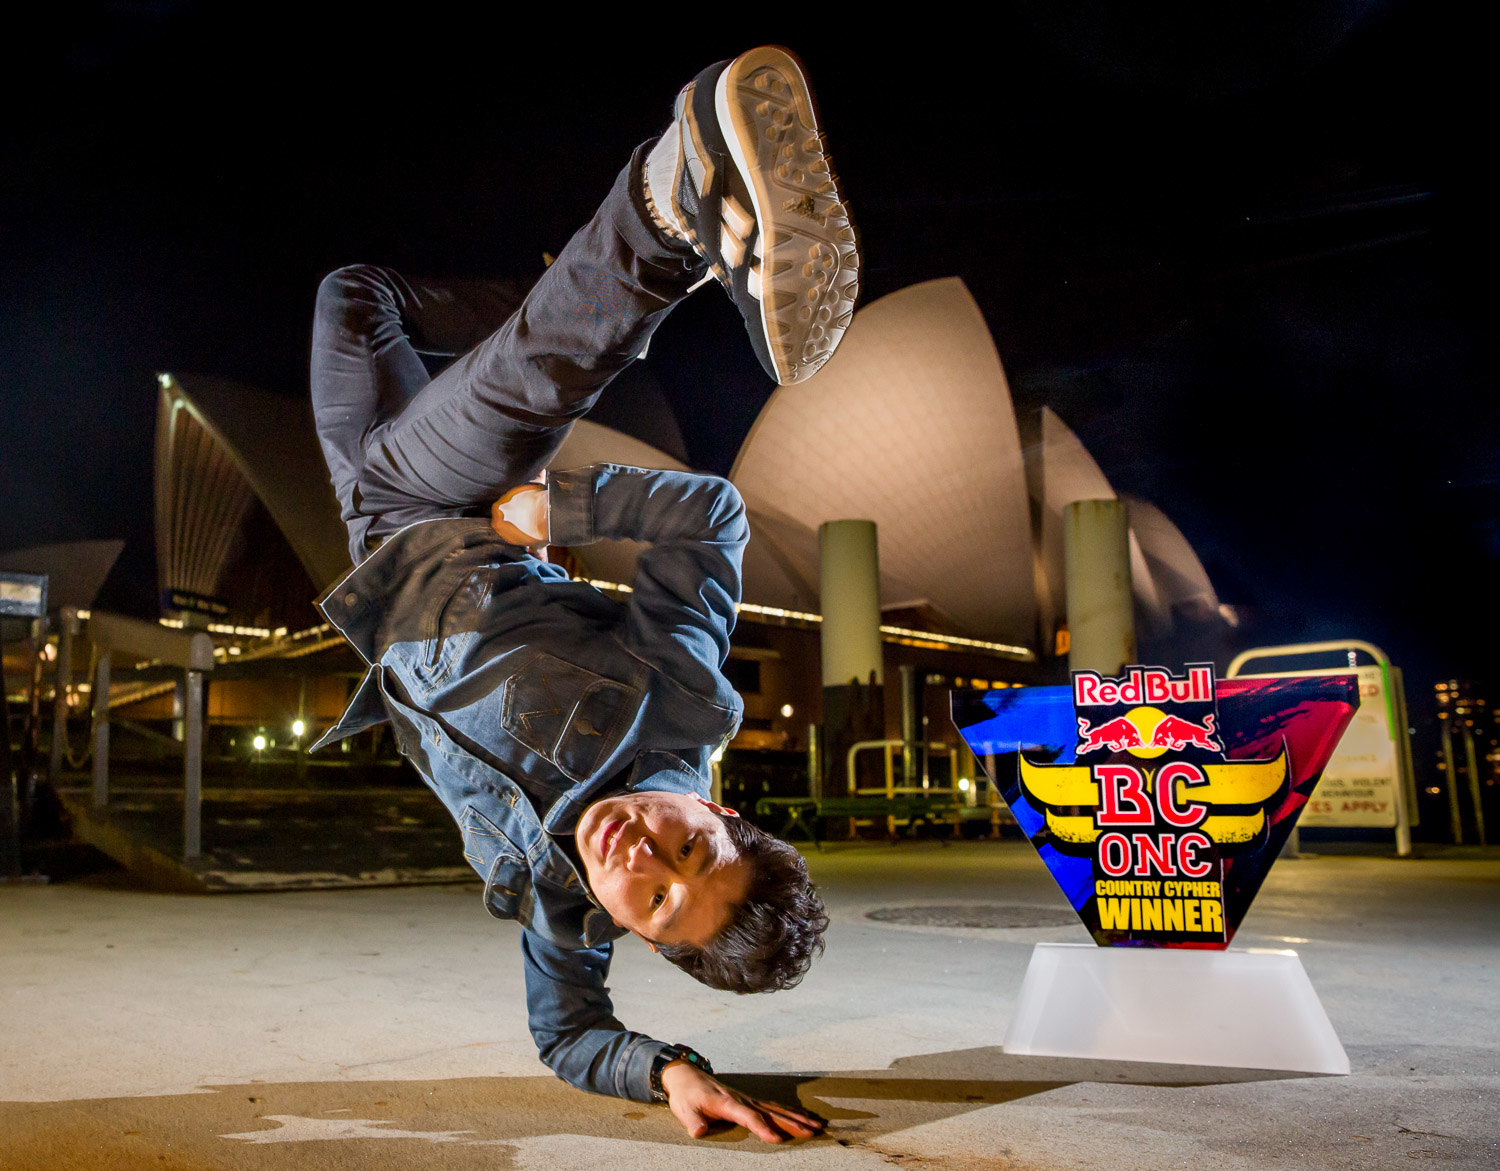 B-boy Blue, Australian BC One qualifier